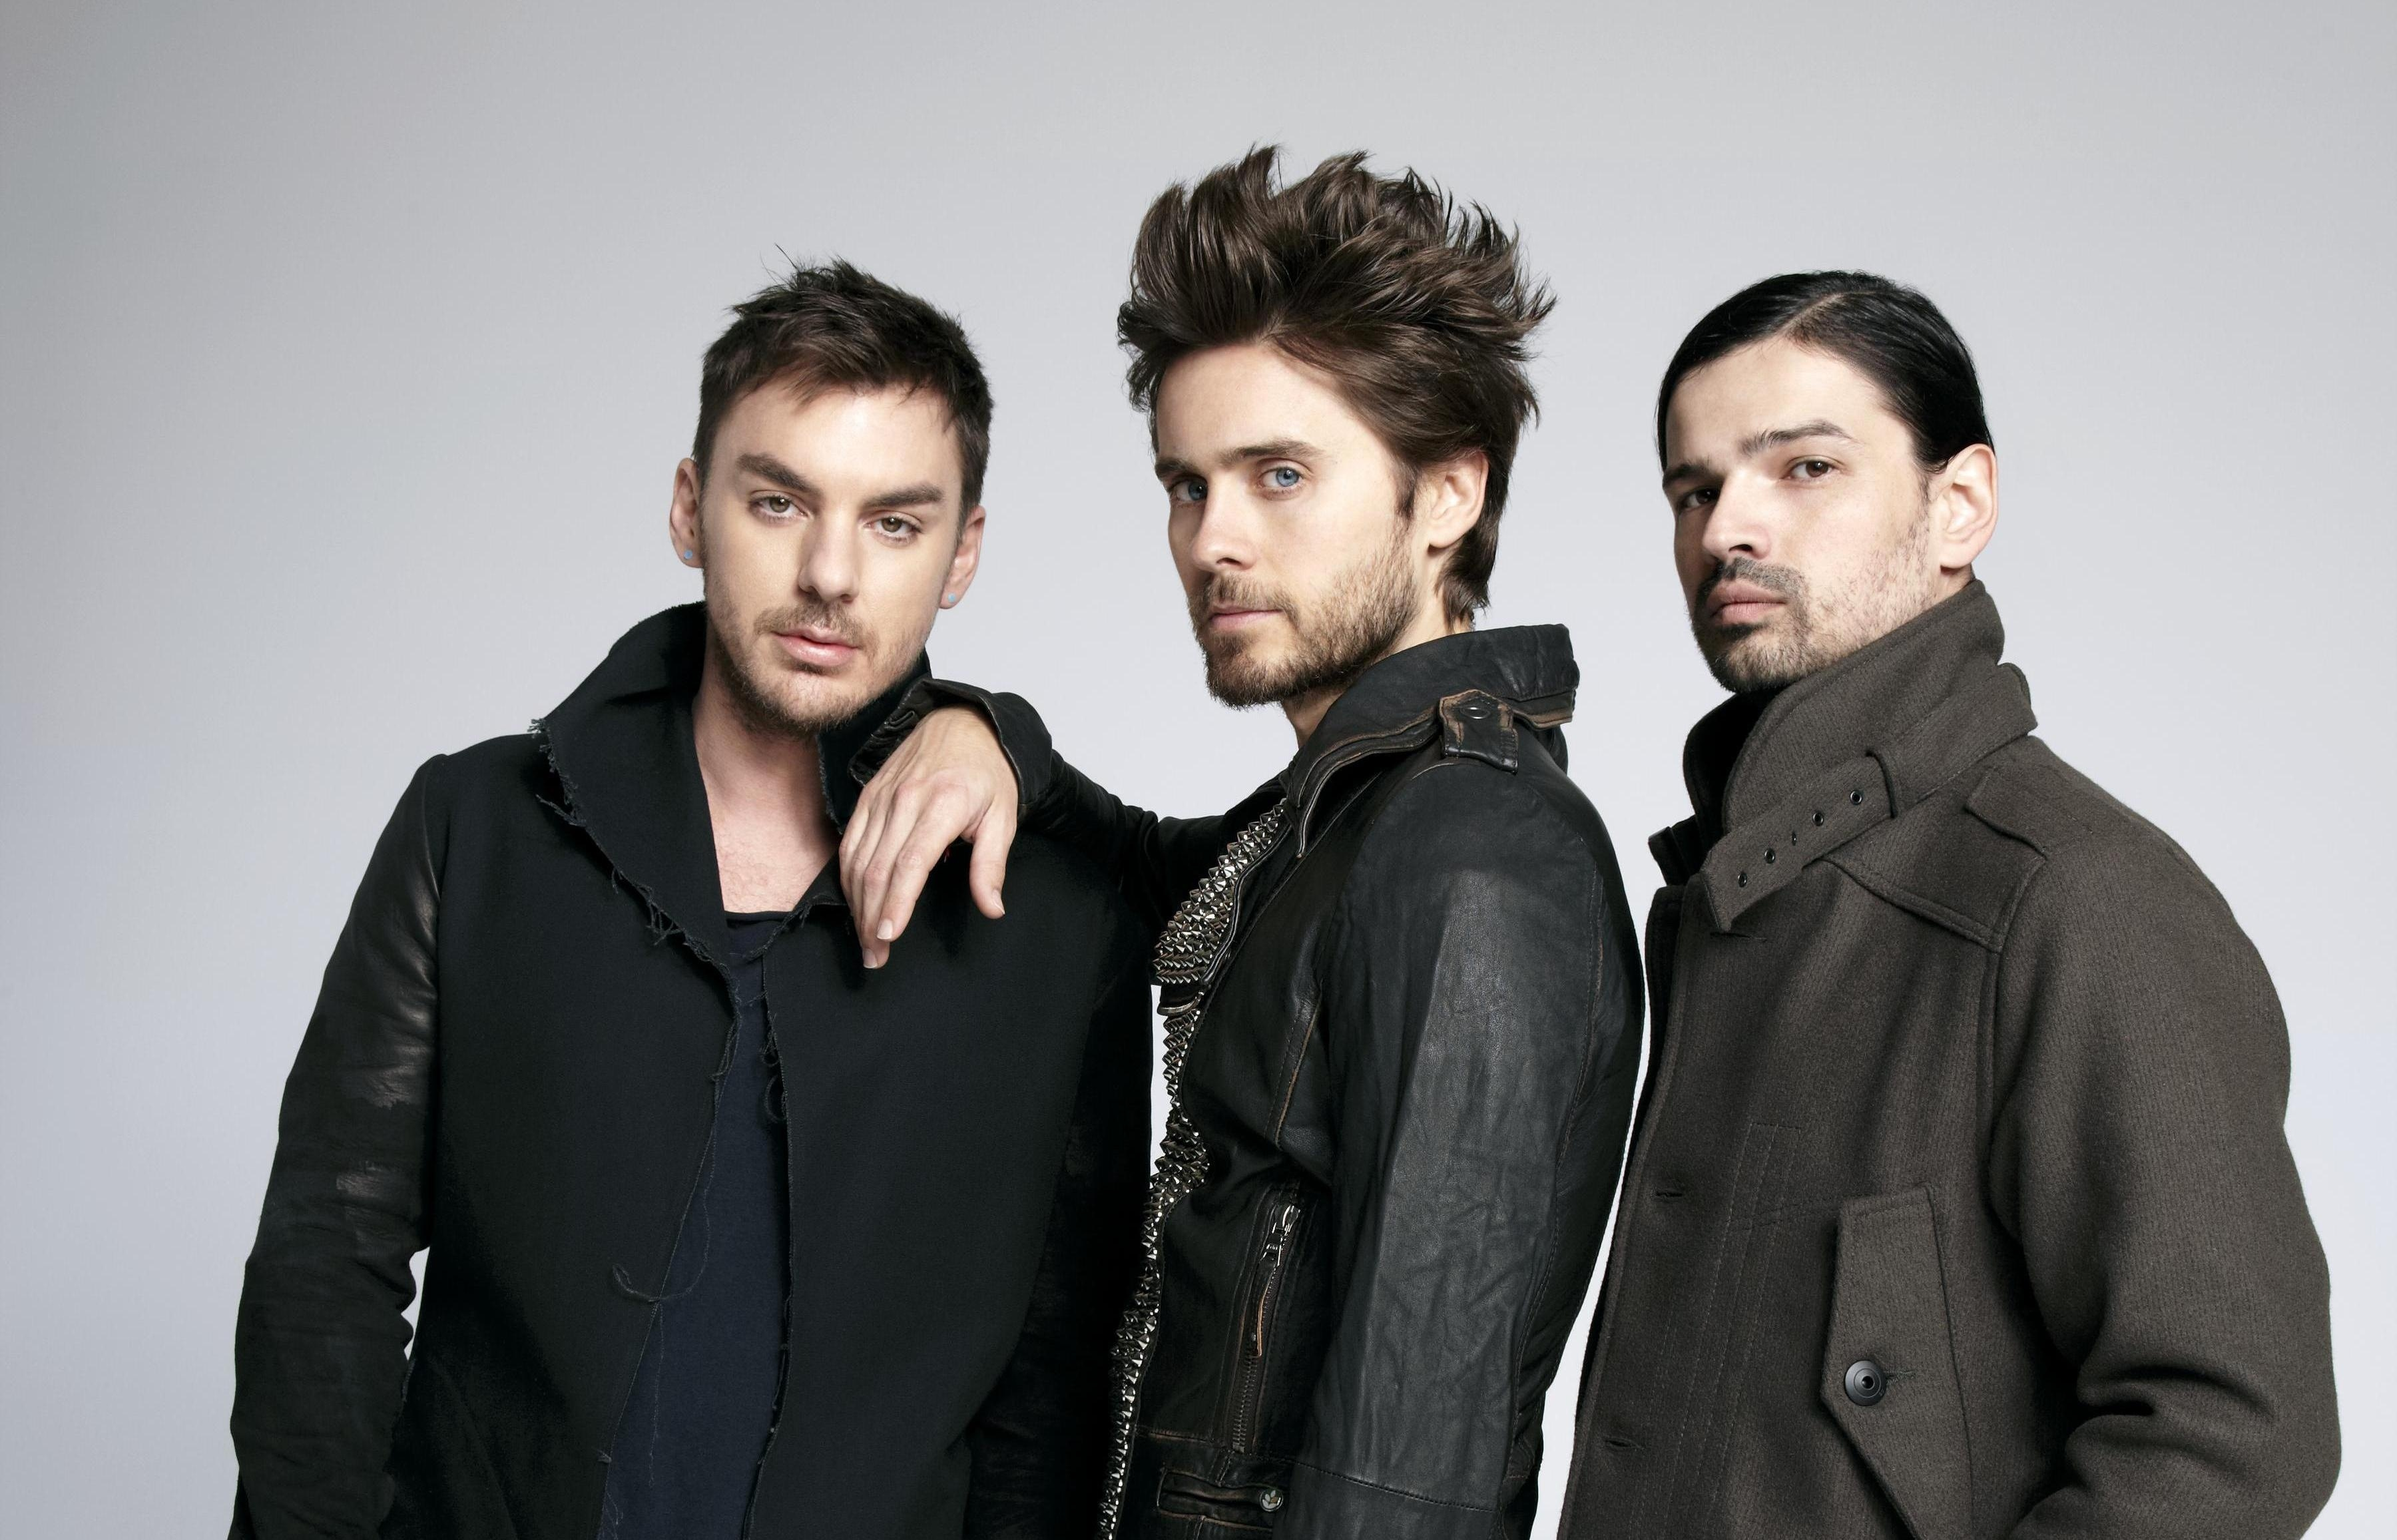 Thirty Seconds to Mars (commonly stylized as 30 Seconds to Mars) is an American rock band from Los Angeles, California, formed in The band consists of brothers Jared Leto (lead vocals, guitar, bass, keyboards) and Shannon Leto (drums, percussion).Occupation: Soundtrack, Actor, Music Department..